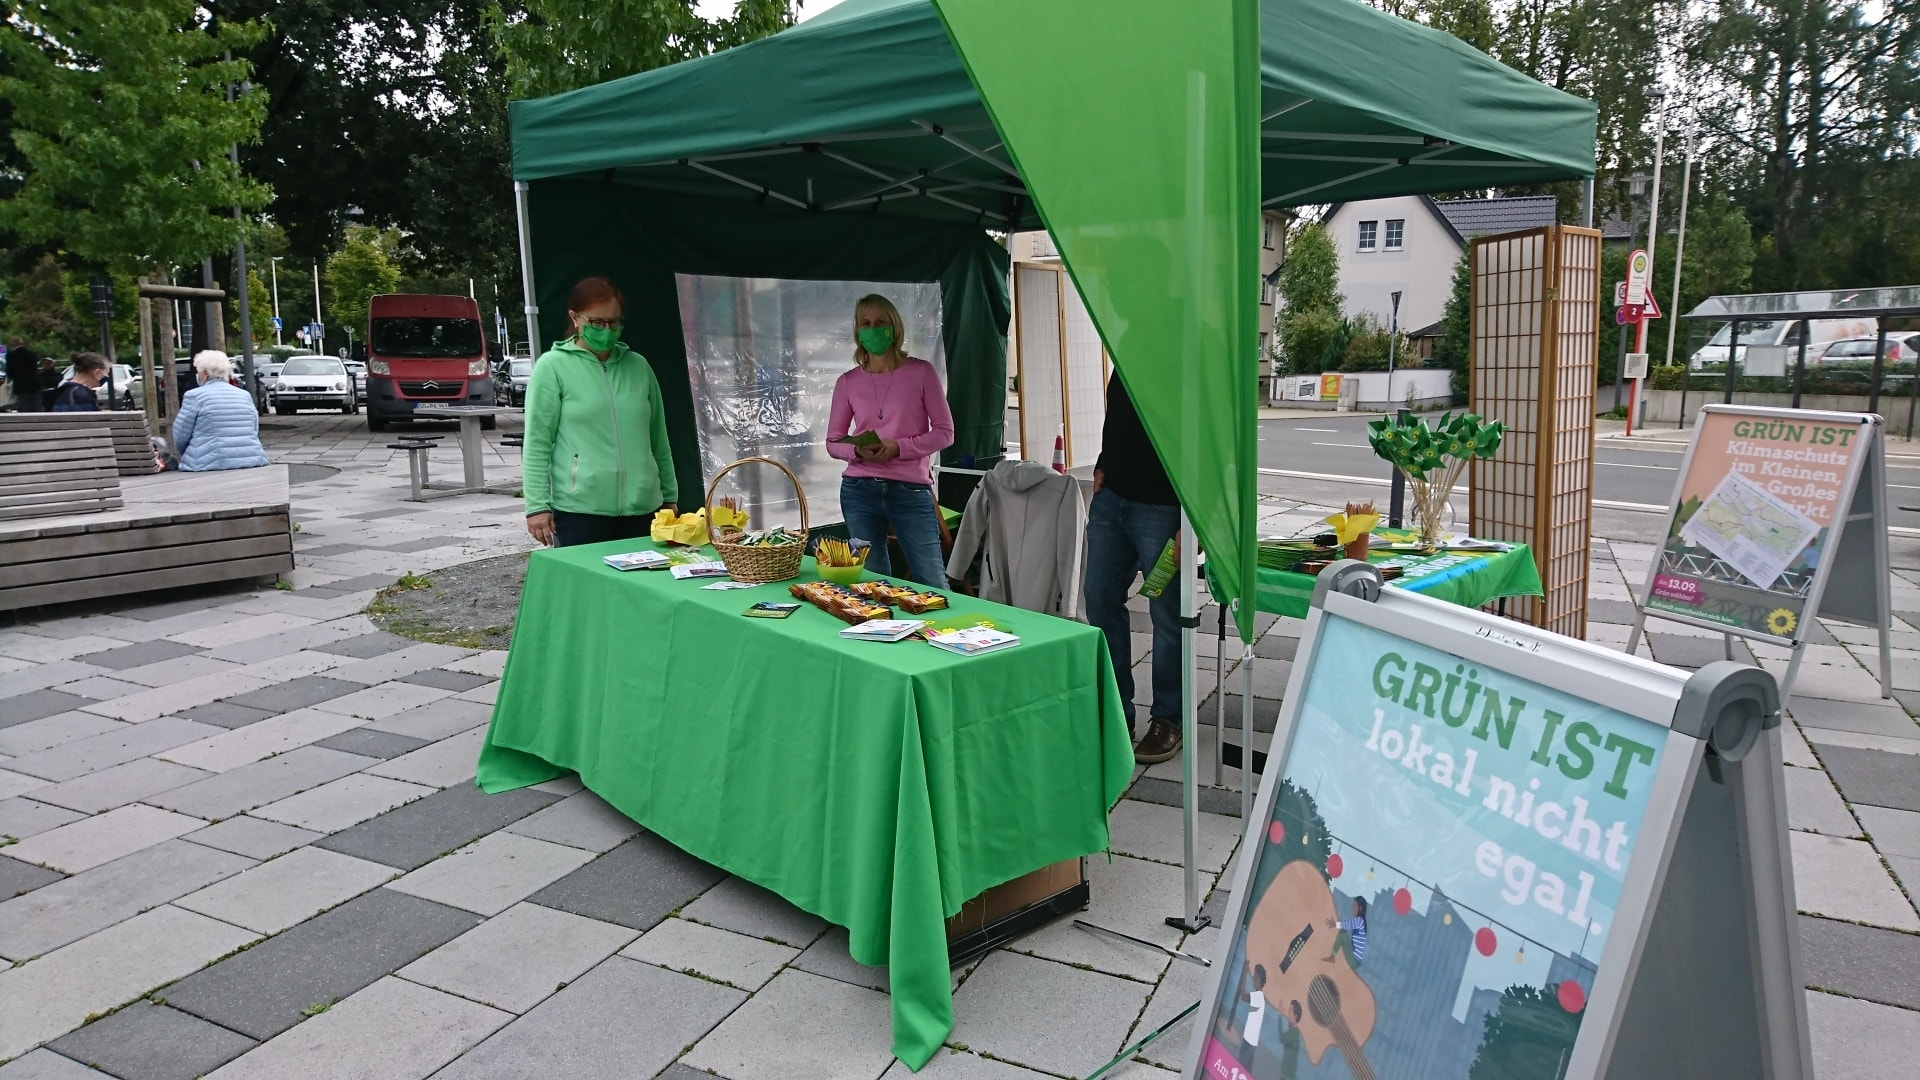 Wahlstand Nr. 2